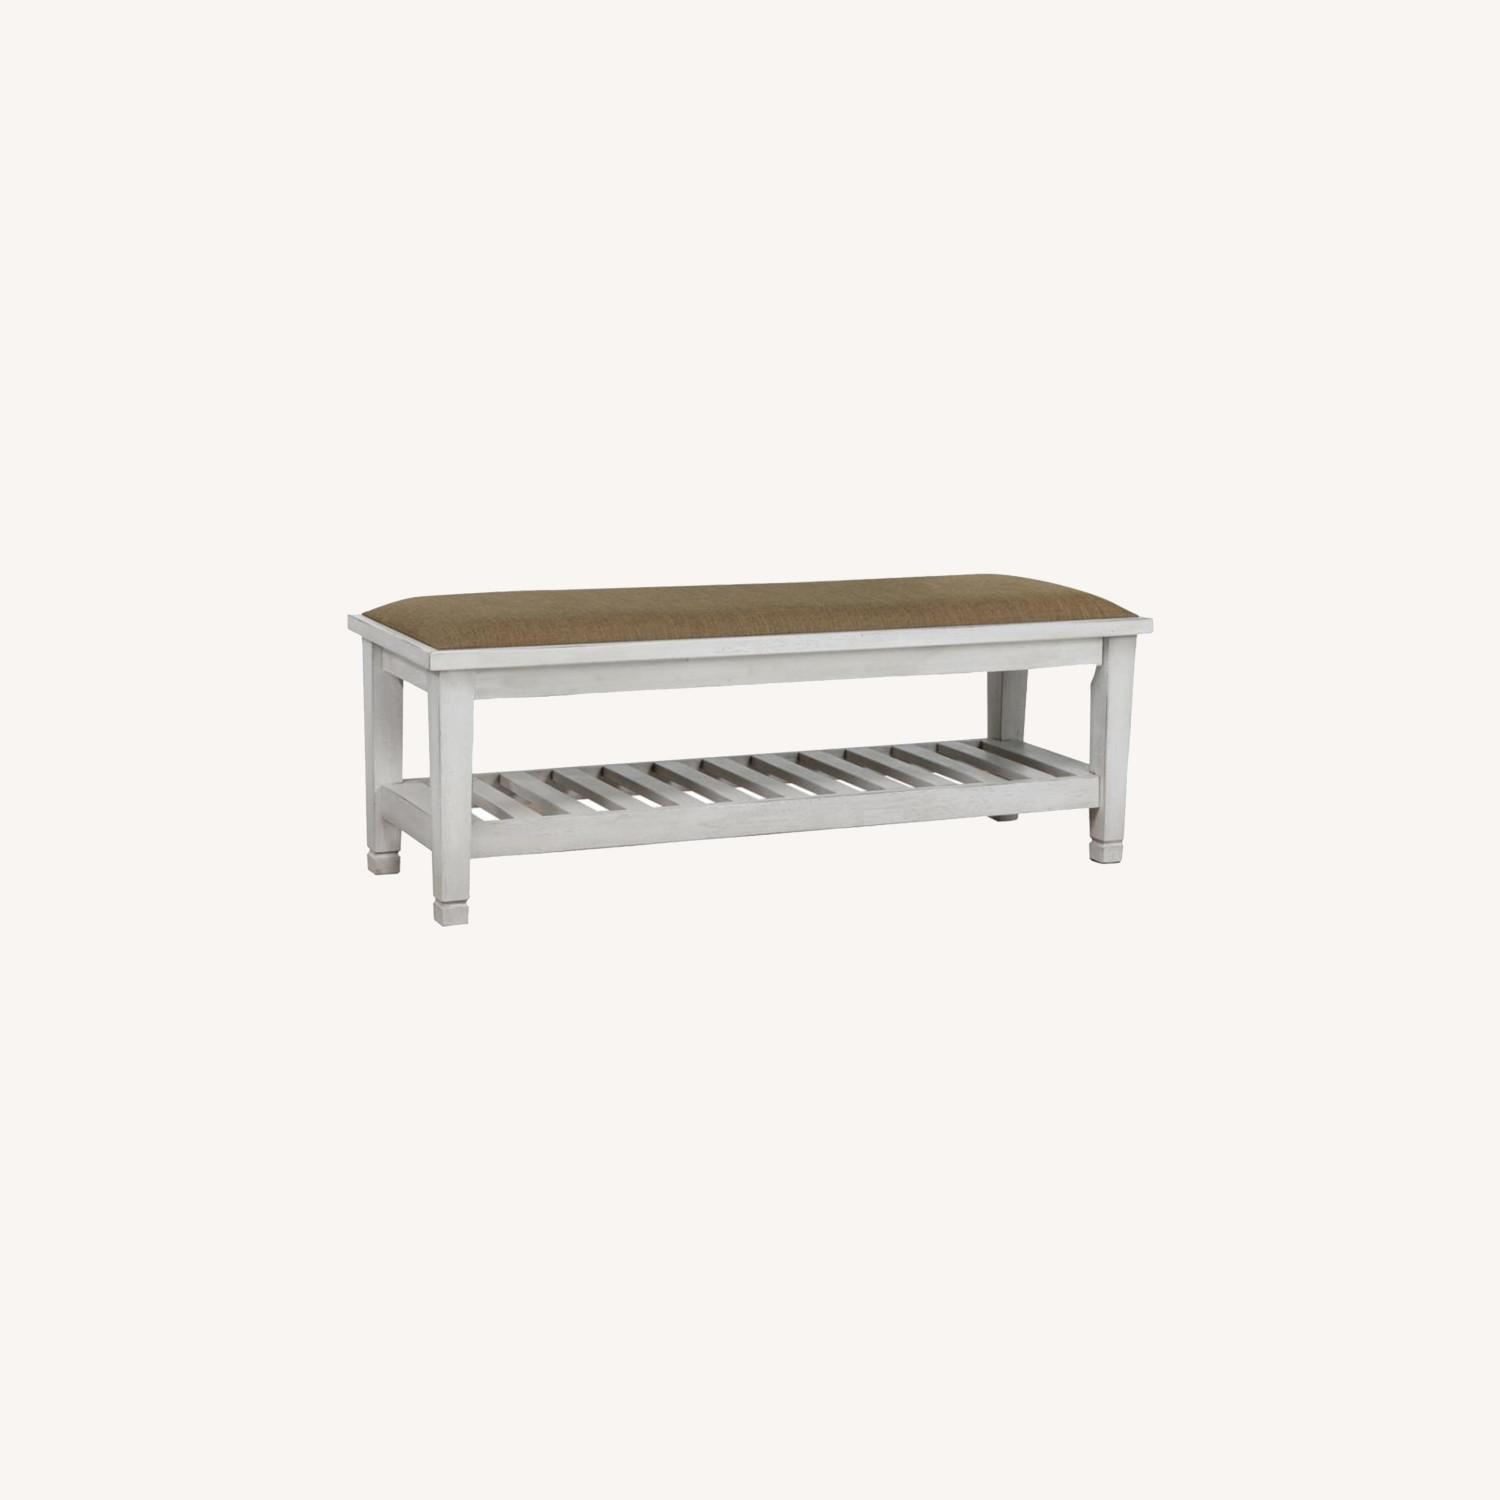 Bench In Antique White Finish W/ Brown Fabric - image-4